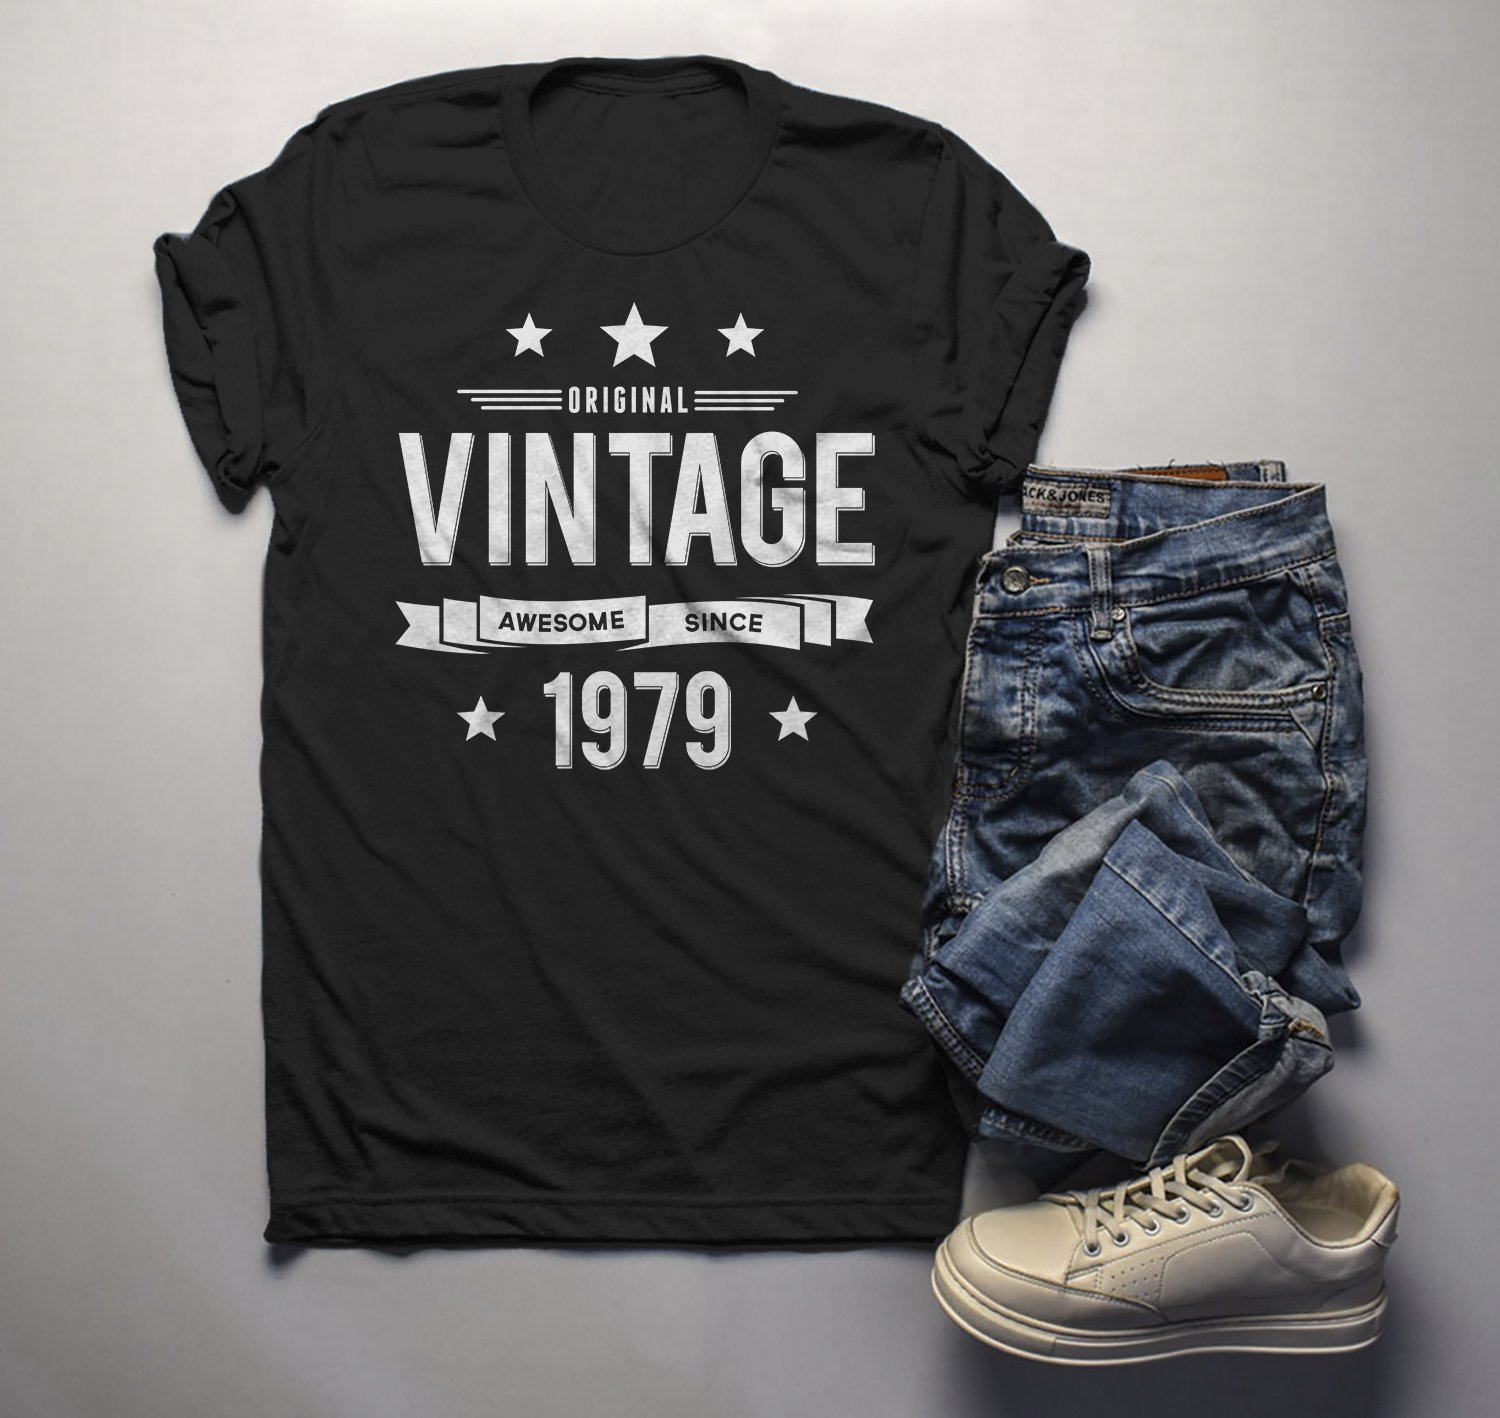 73bd48a03 Men's 40th Birthday T Shirt Original Vintage Shirt Awesome Since 1979 Gift  Idea 40th Birthday Shirts Vintage Tee Vintage Shirt